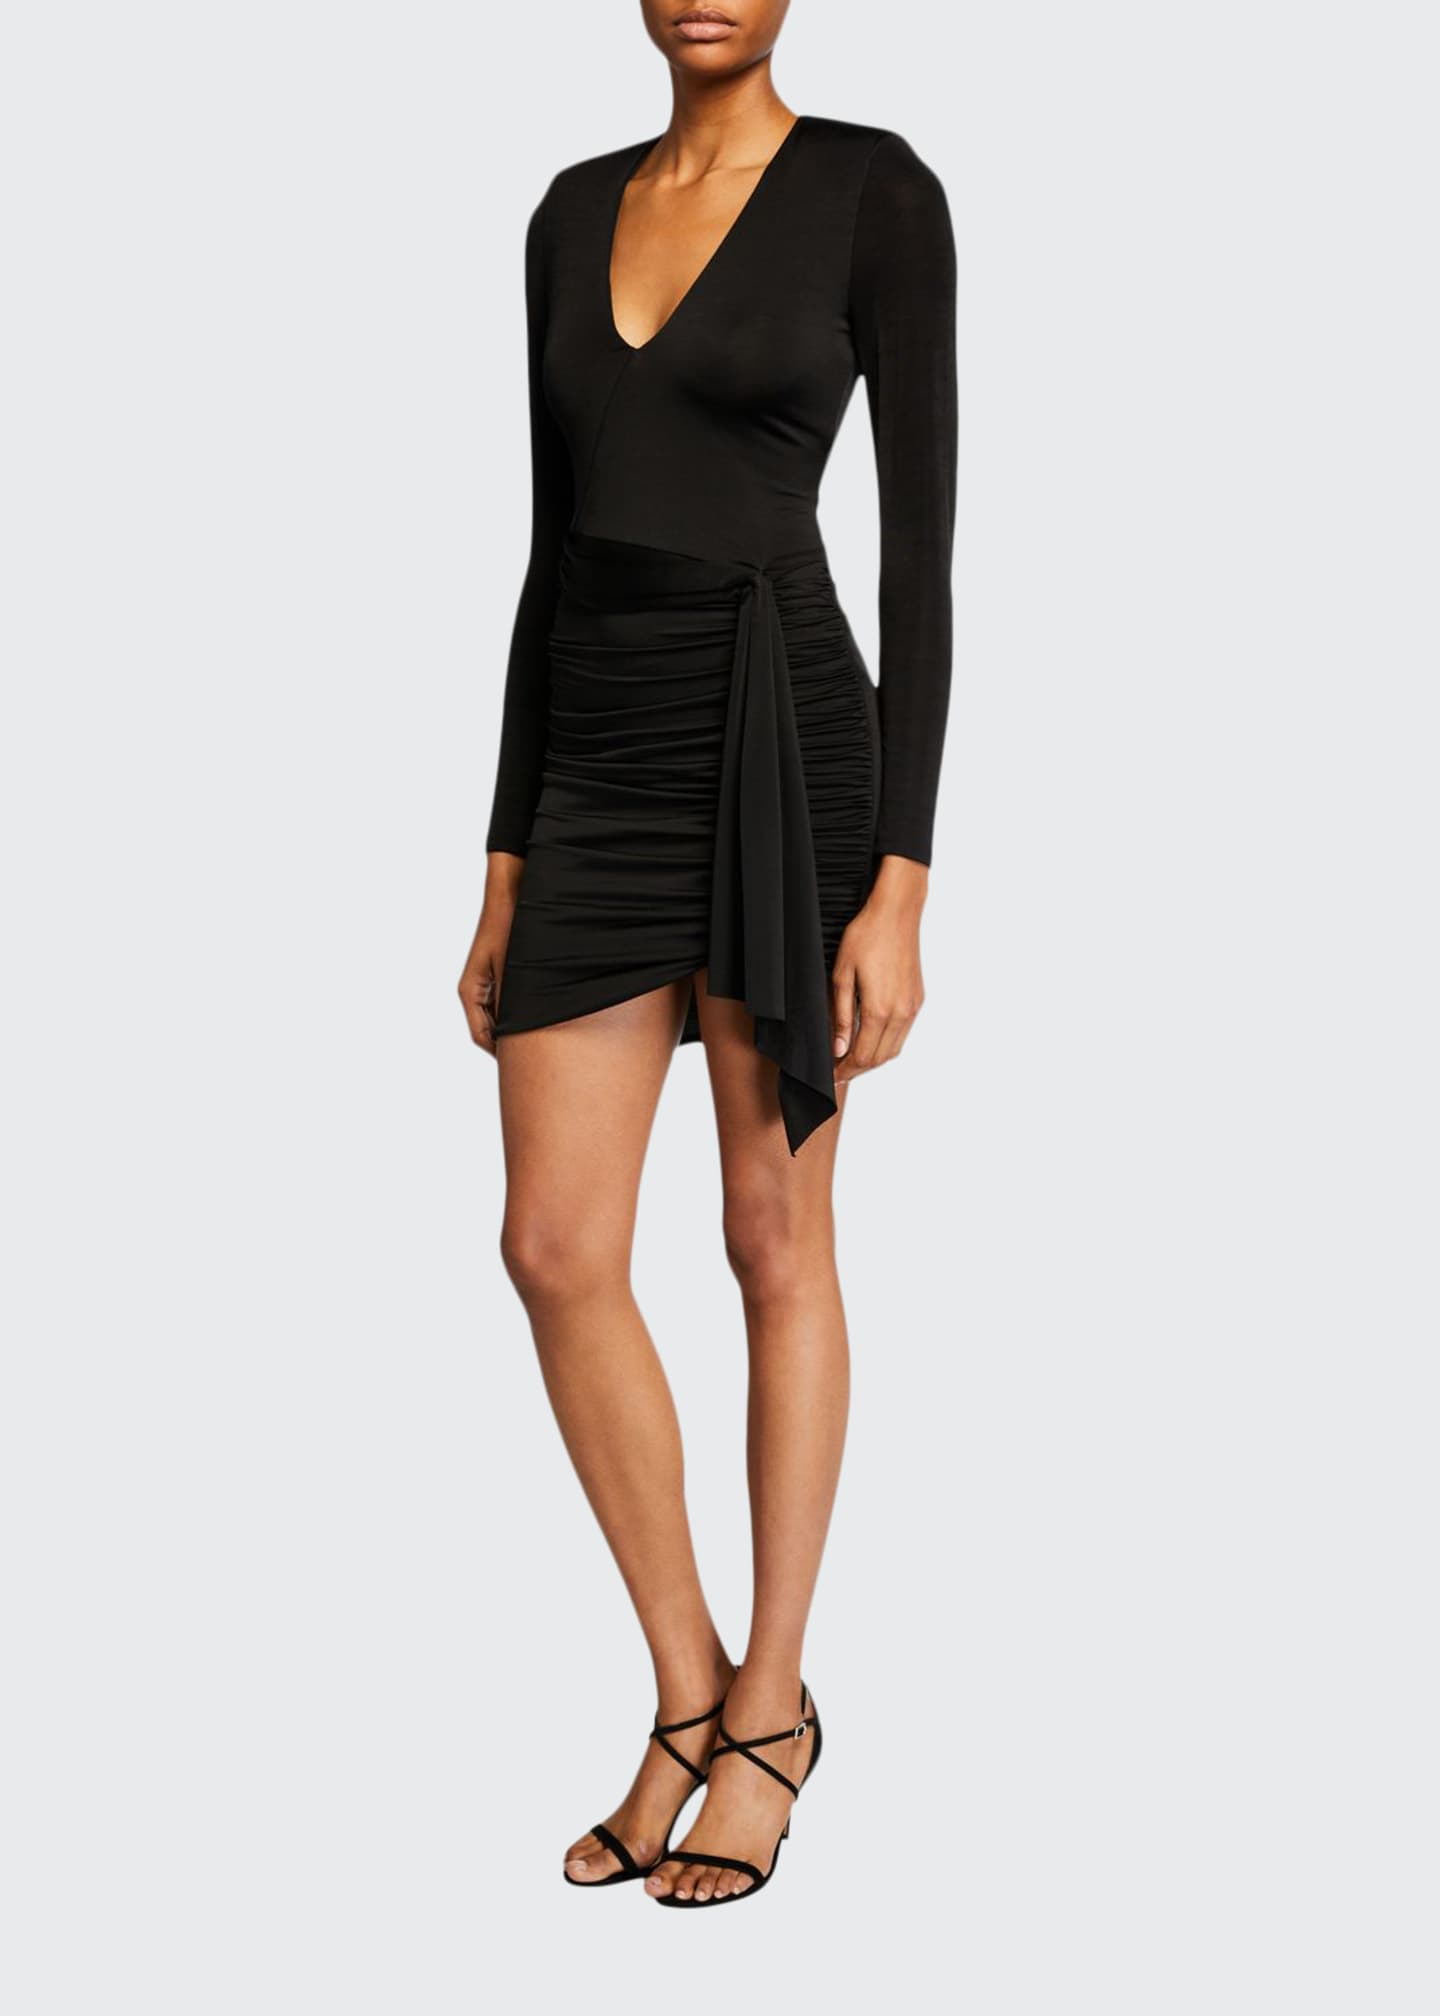 Alice + Olivia Kyra Deep V Drapey Long-Sleeve